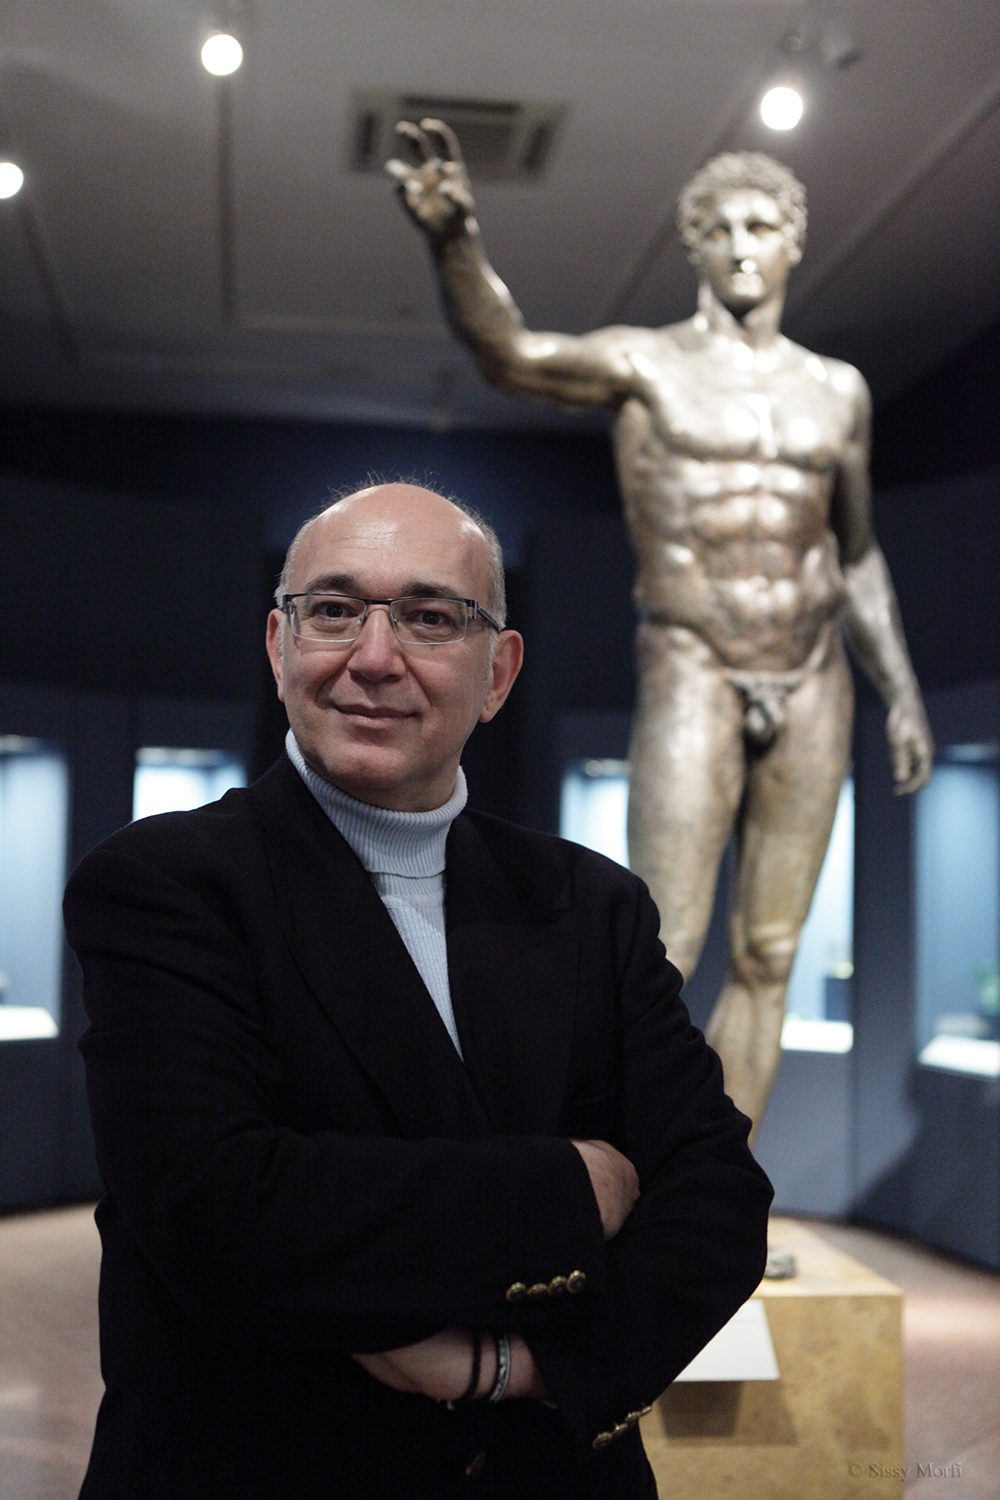 Giorgos Kakavas / deputy director of the ancient GREEK NATIONAL MUSEUM and director of the Numismatic Museum / Metropolis No 1014